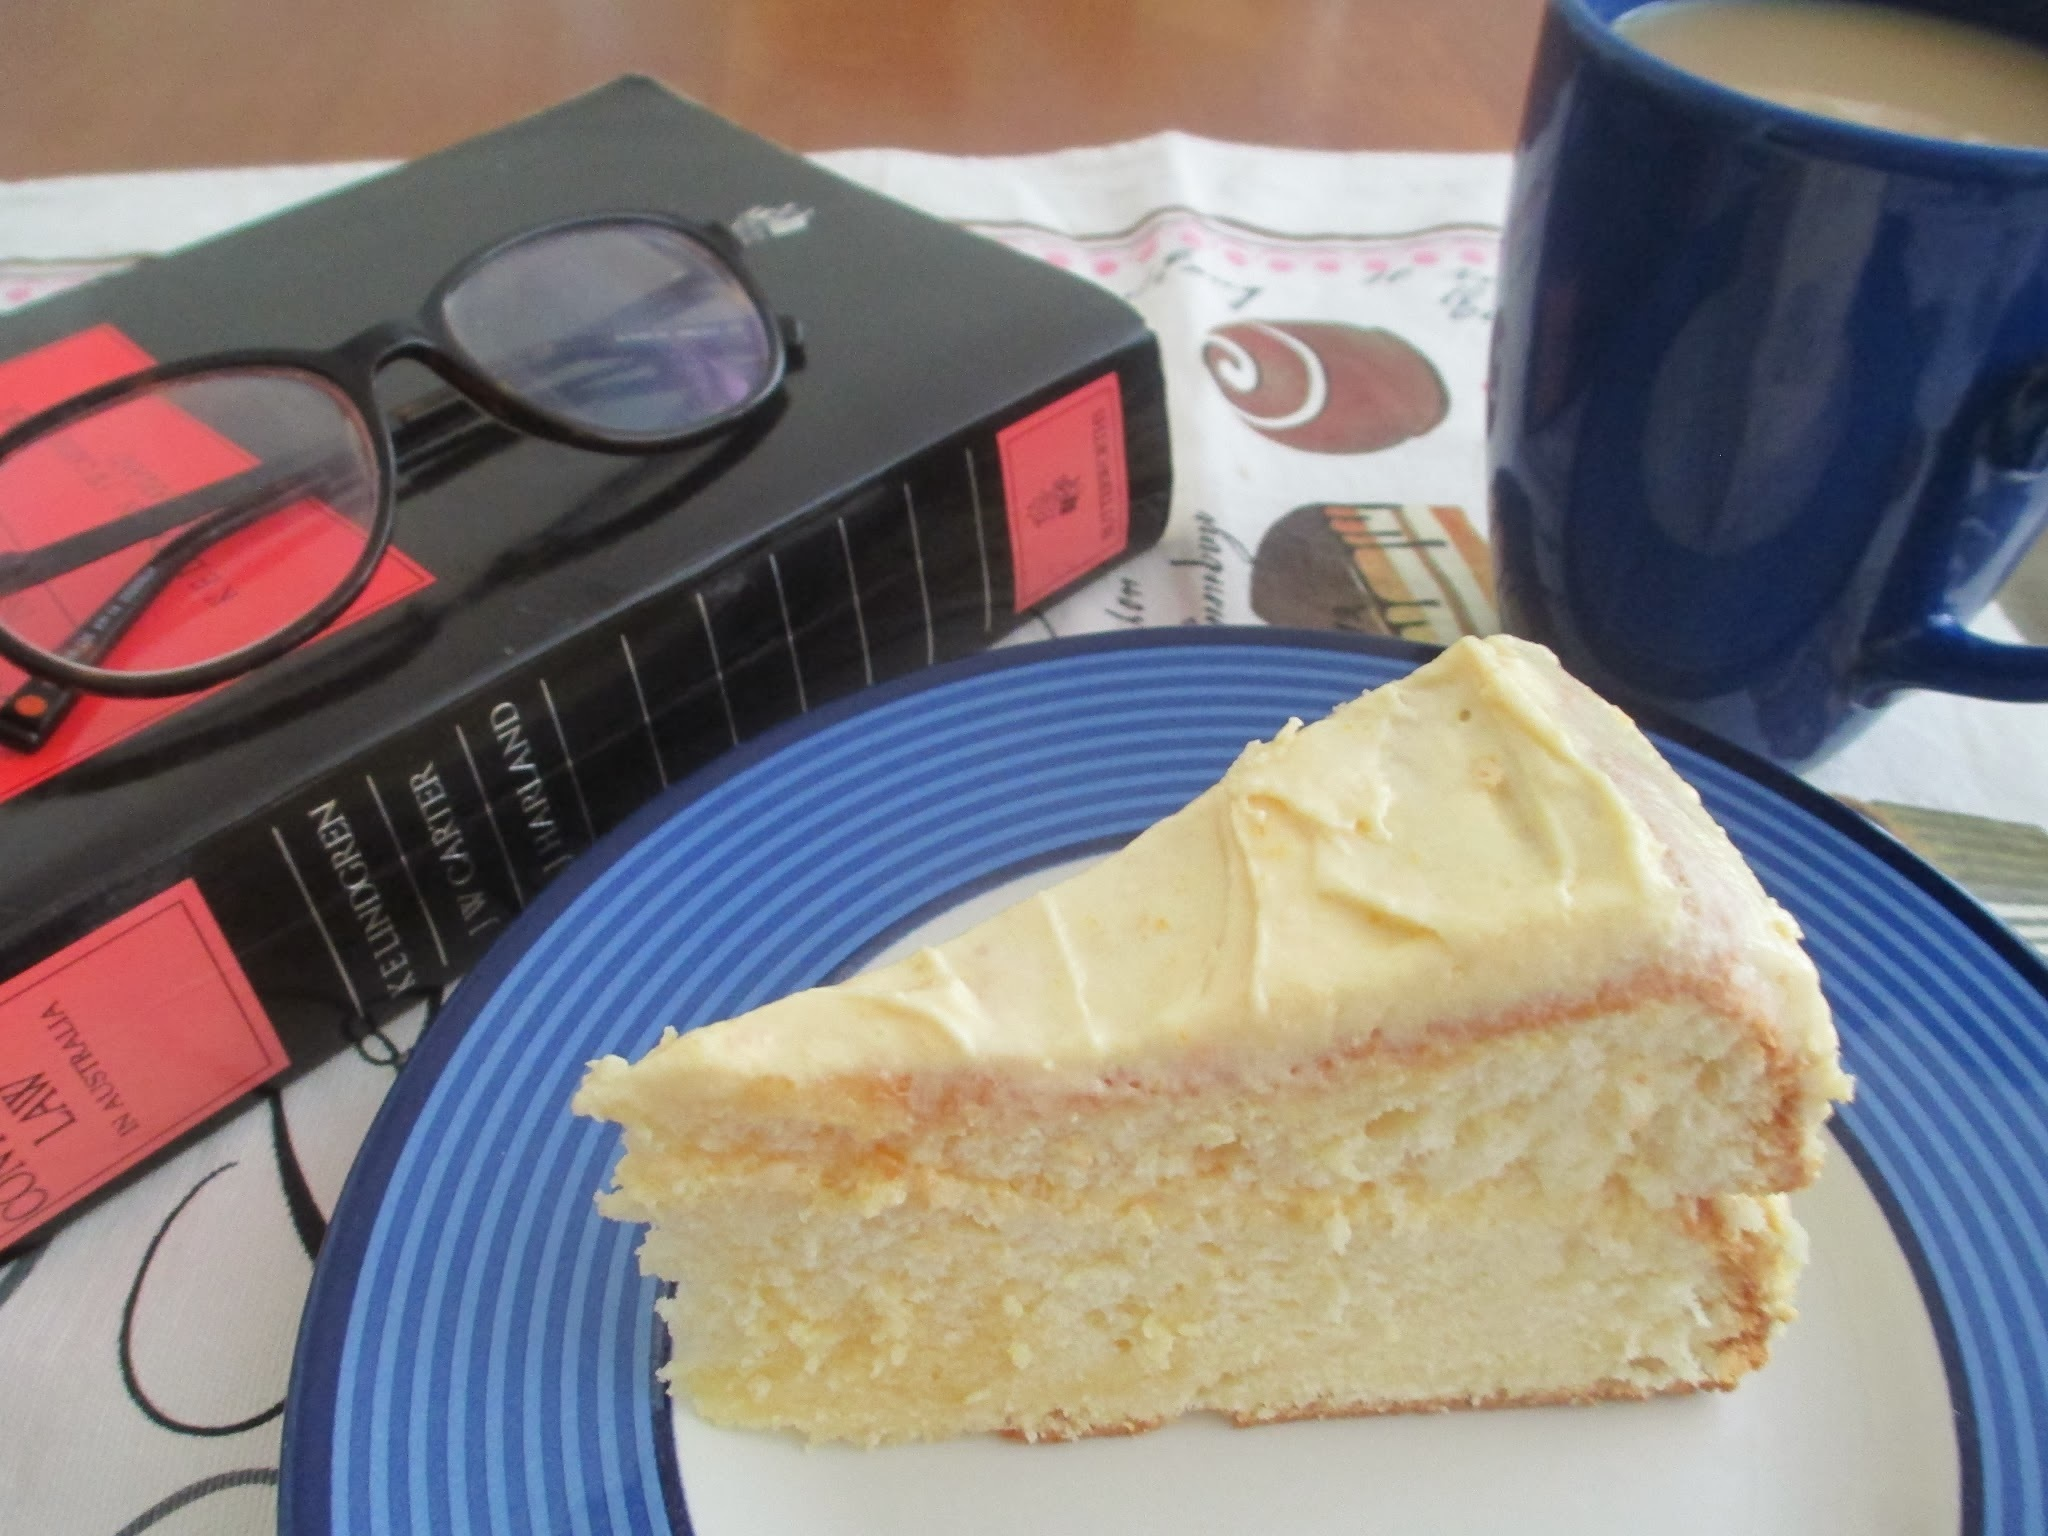 Lemon Chiffon Cake with Zesty Peach Icing for Food 'n' Flix - Stranger than Fiction